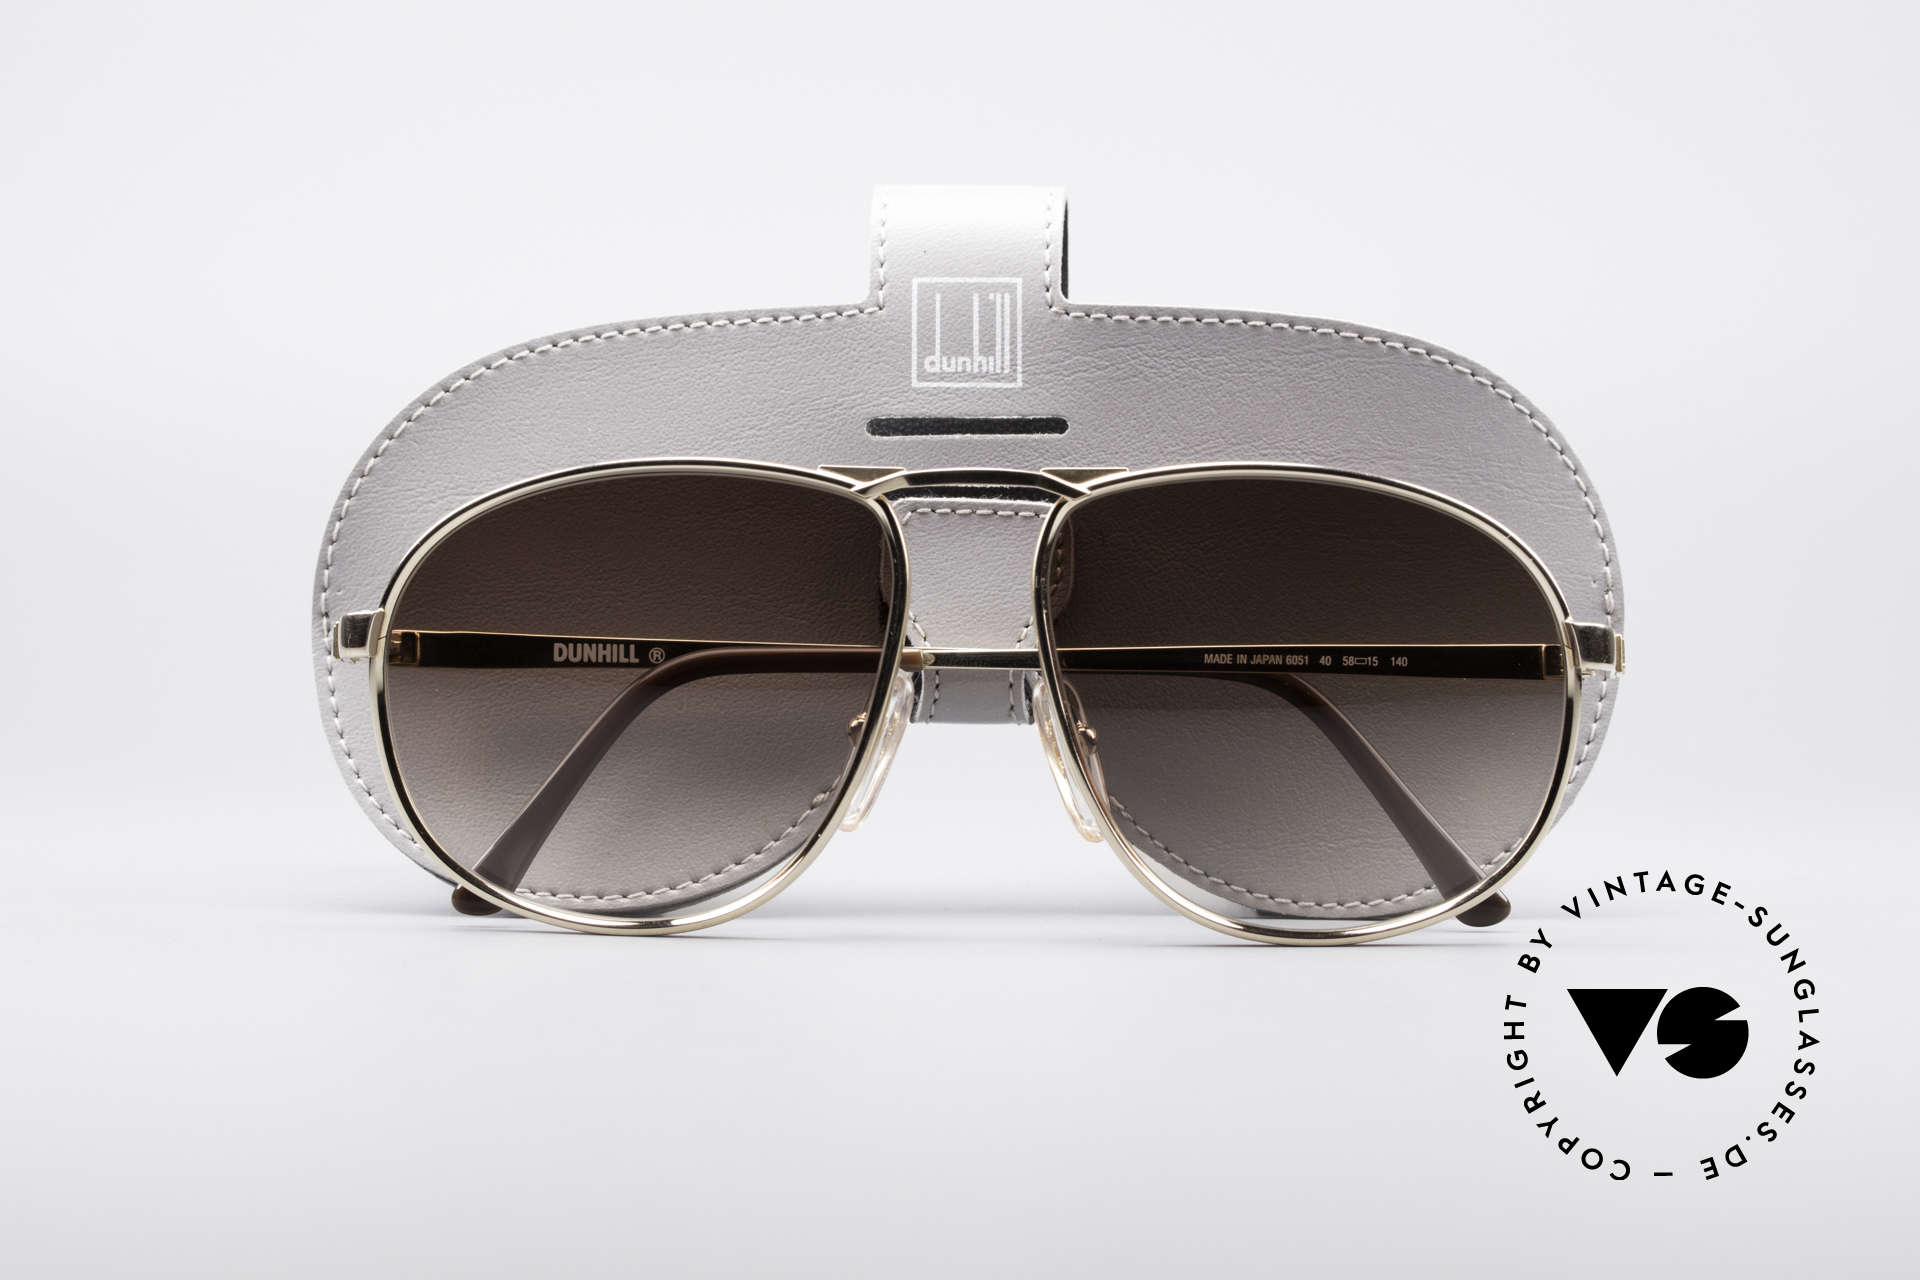 Dunhill 6051 80's Titanium Luxury Shades, unworn (like all our rare vintage Alfred Dunhill eyewear), Made for Men